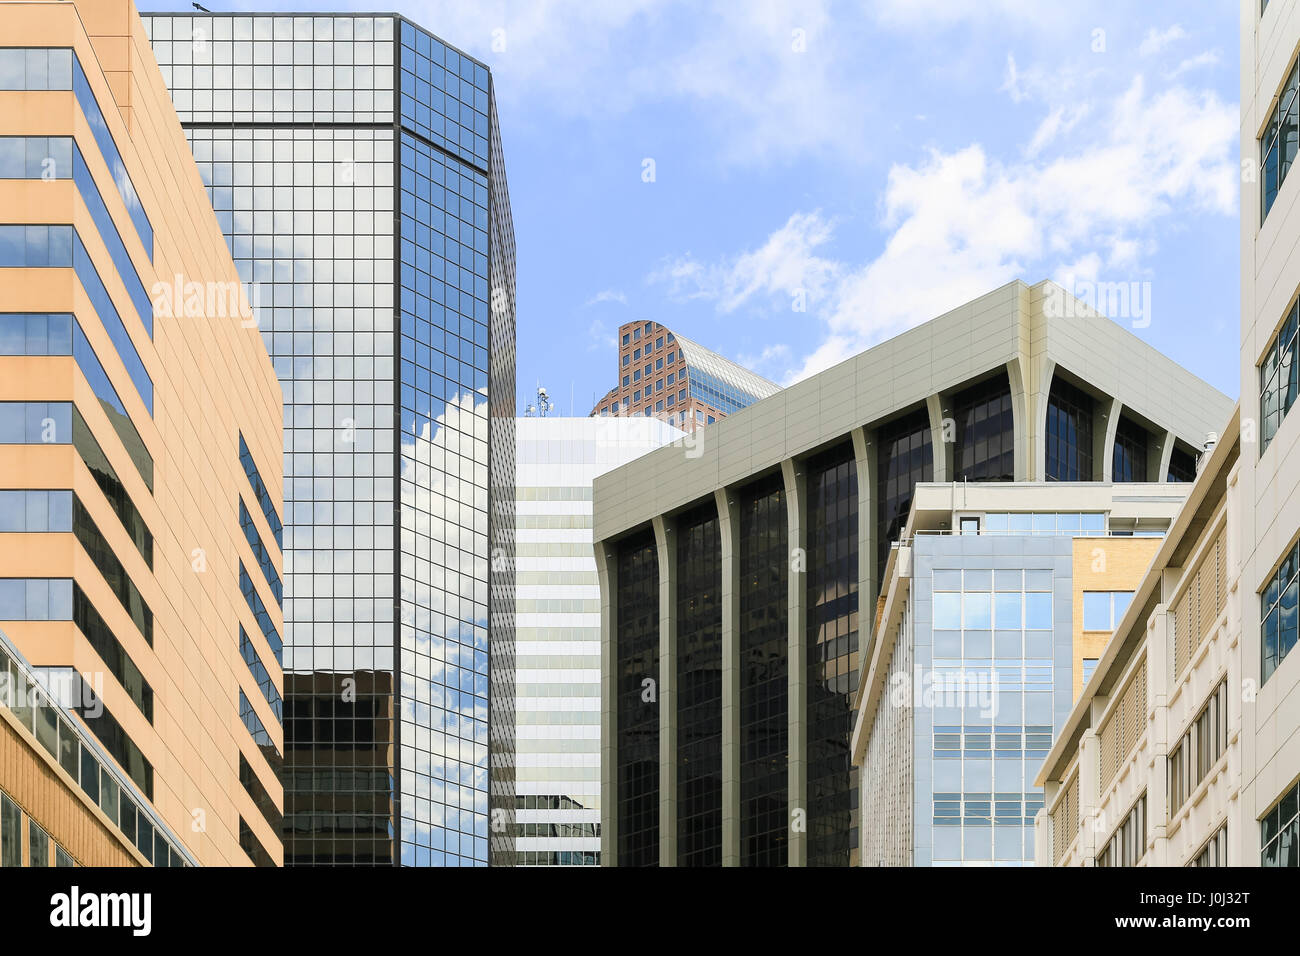 Denver, USA - May 25, 2016: Skyscrapers belonging to the World Trade Center office building complex. - Stock Image